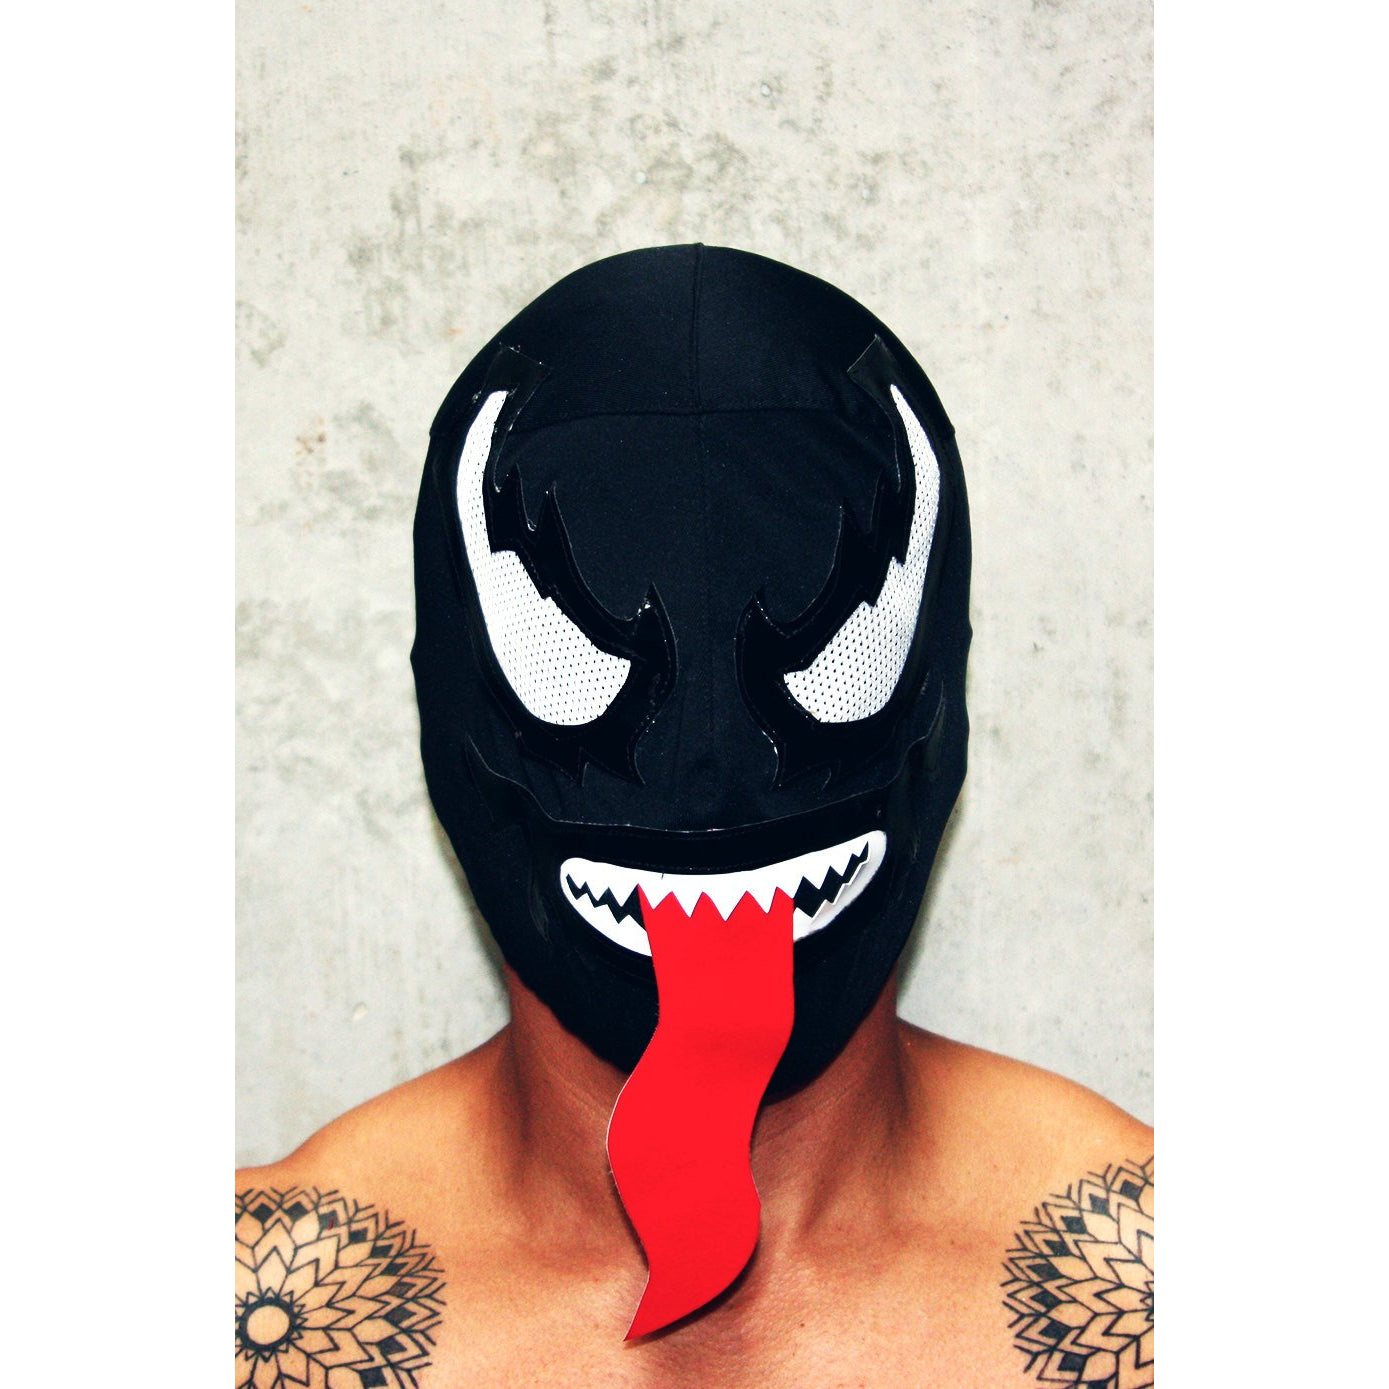 Venom Mask - Mexican Wrestling Masks - Lucha Libre Mask